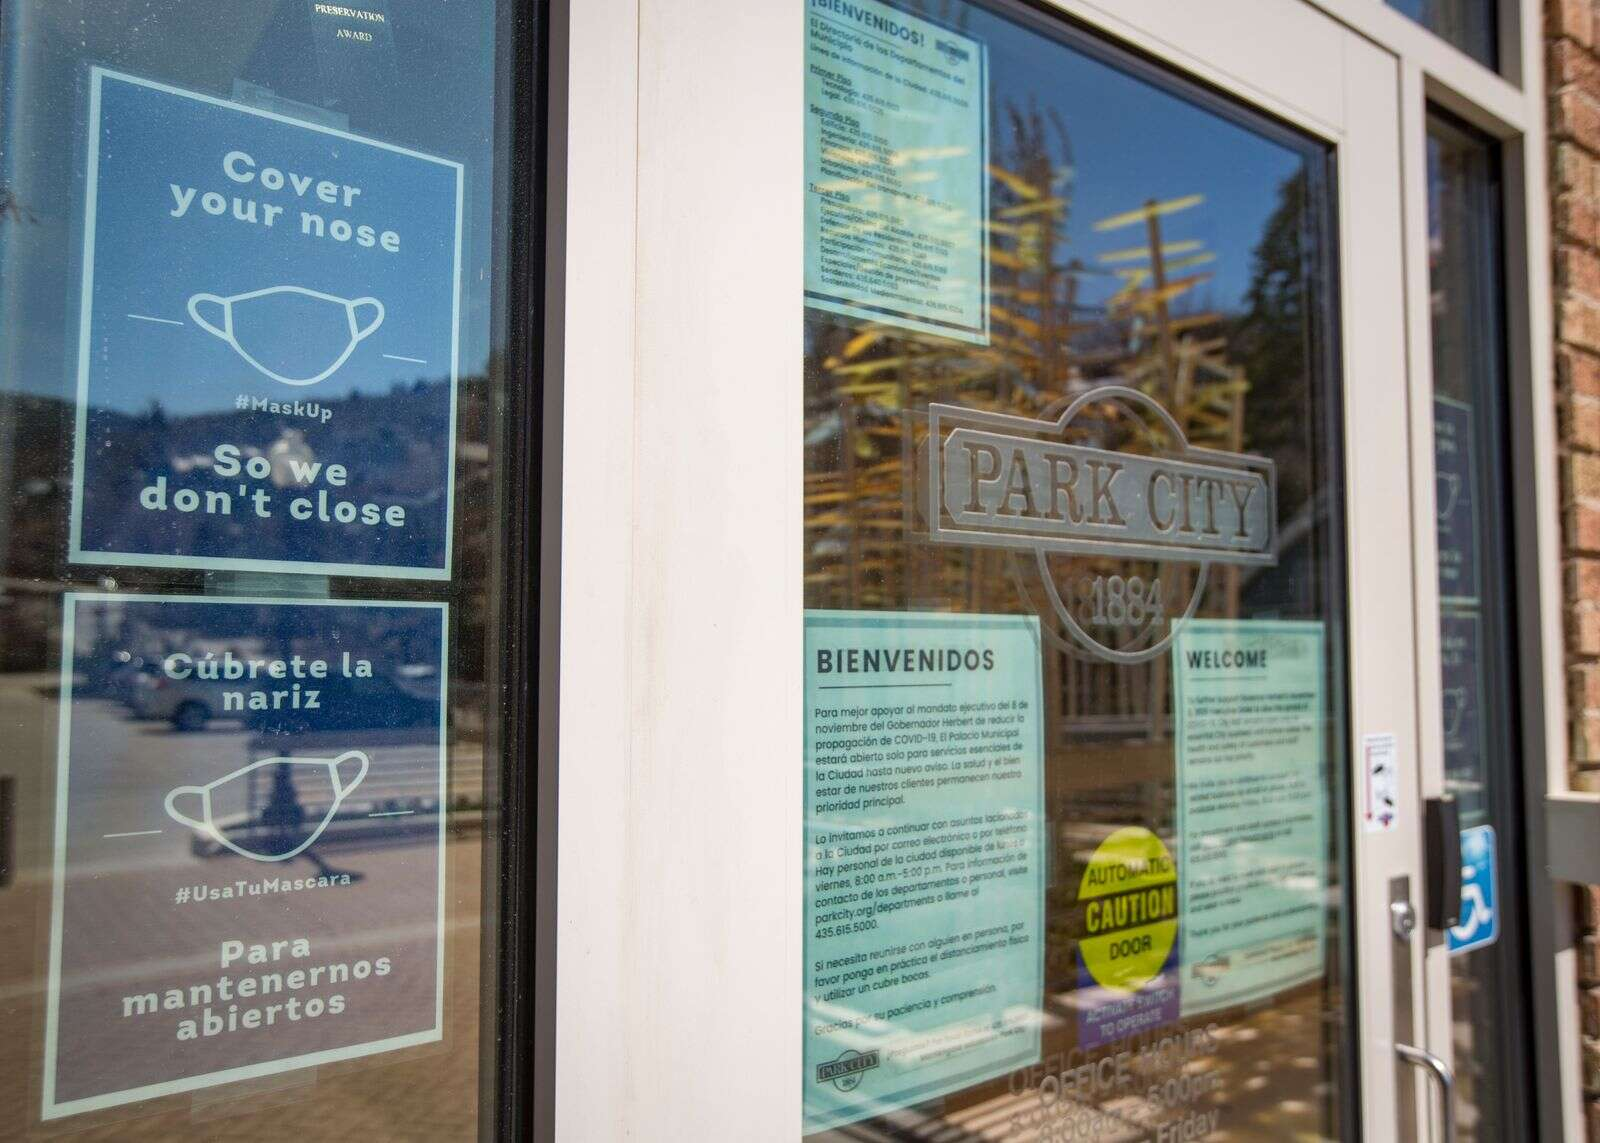 Park City keeps mask requirement in municipal buildings like library, City Hall